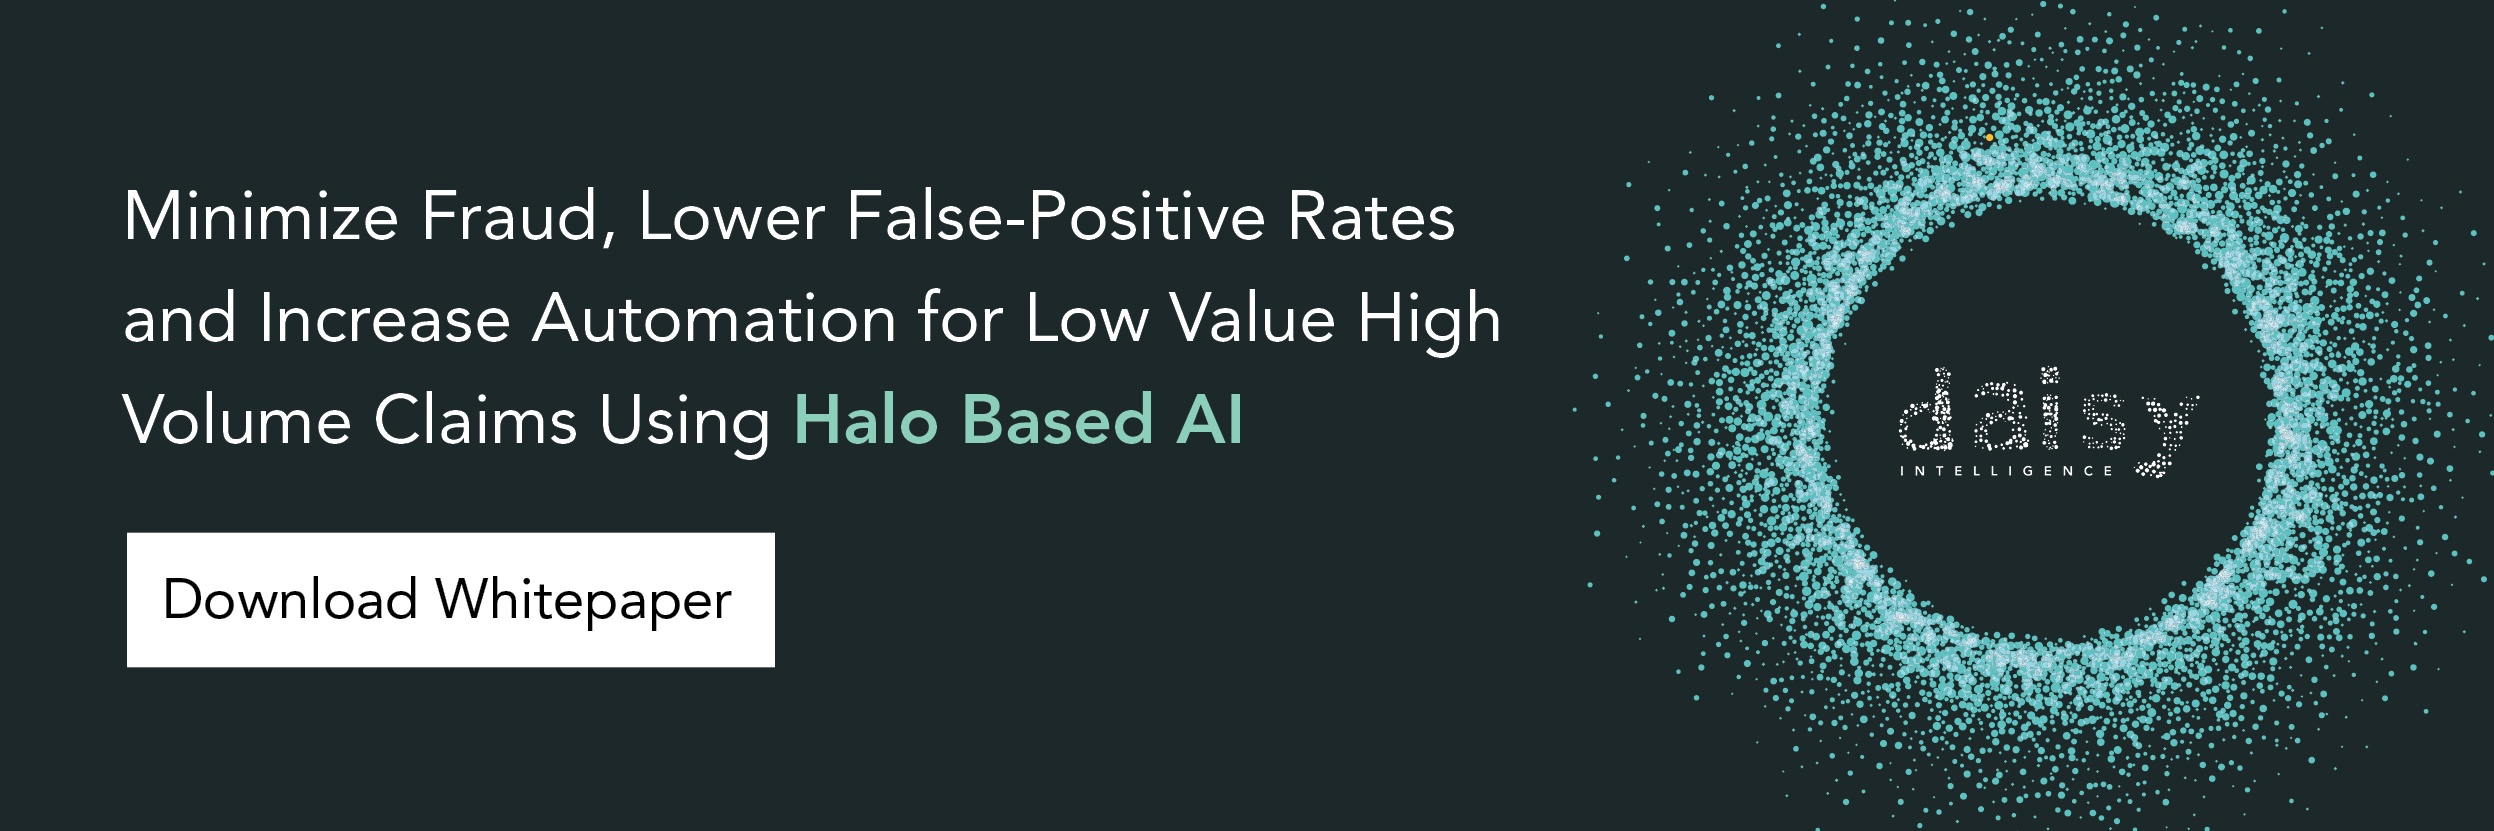 Daisy Halo Based AI Whitepaper Download